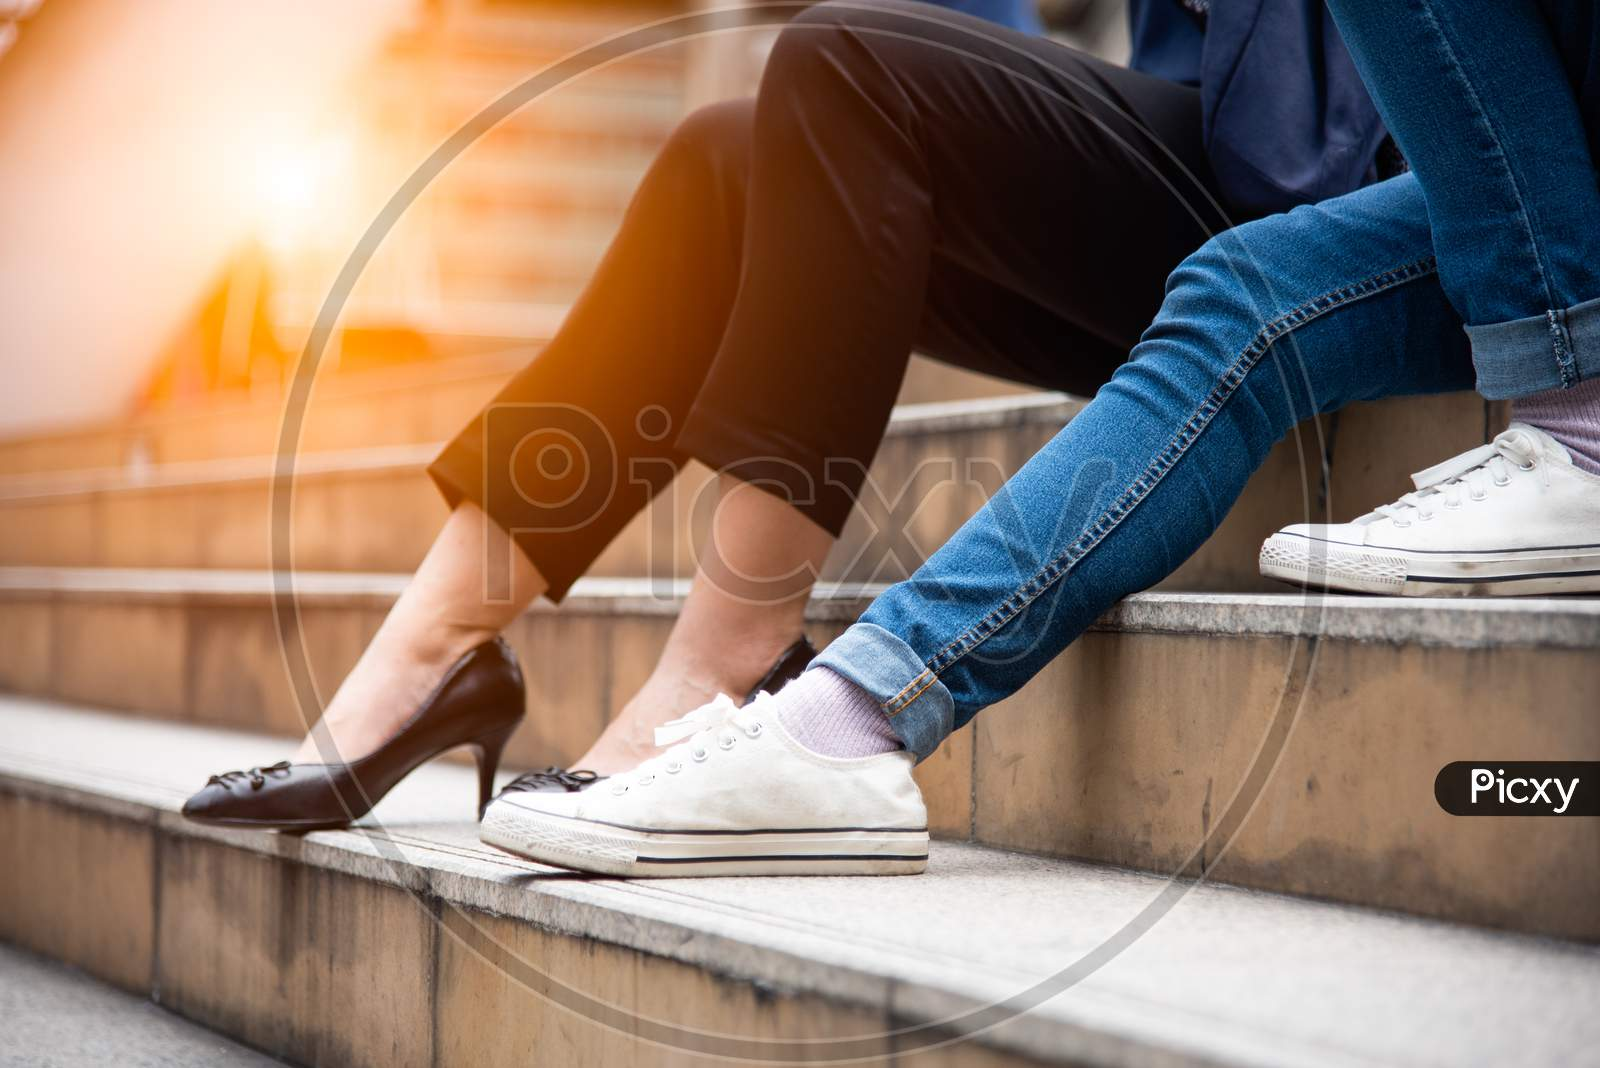 Close Up Of Two Woman Legs. Friend Are Talking Together On Stair. People And Lifestyles Concept. Social And Conversation Concept. Friendship Theme.